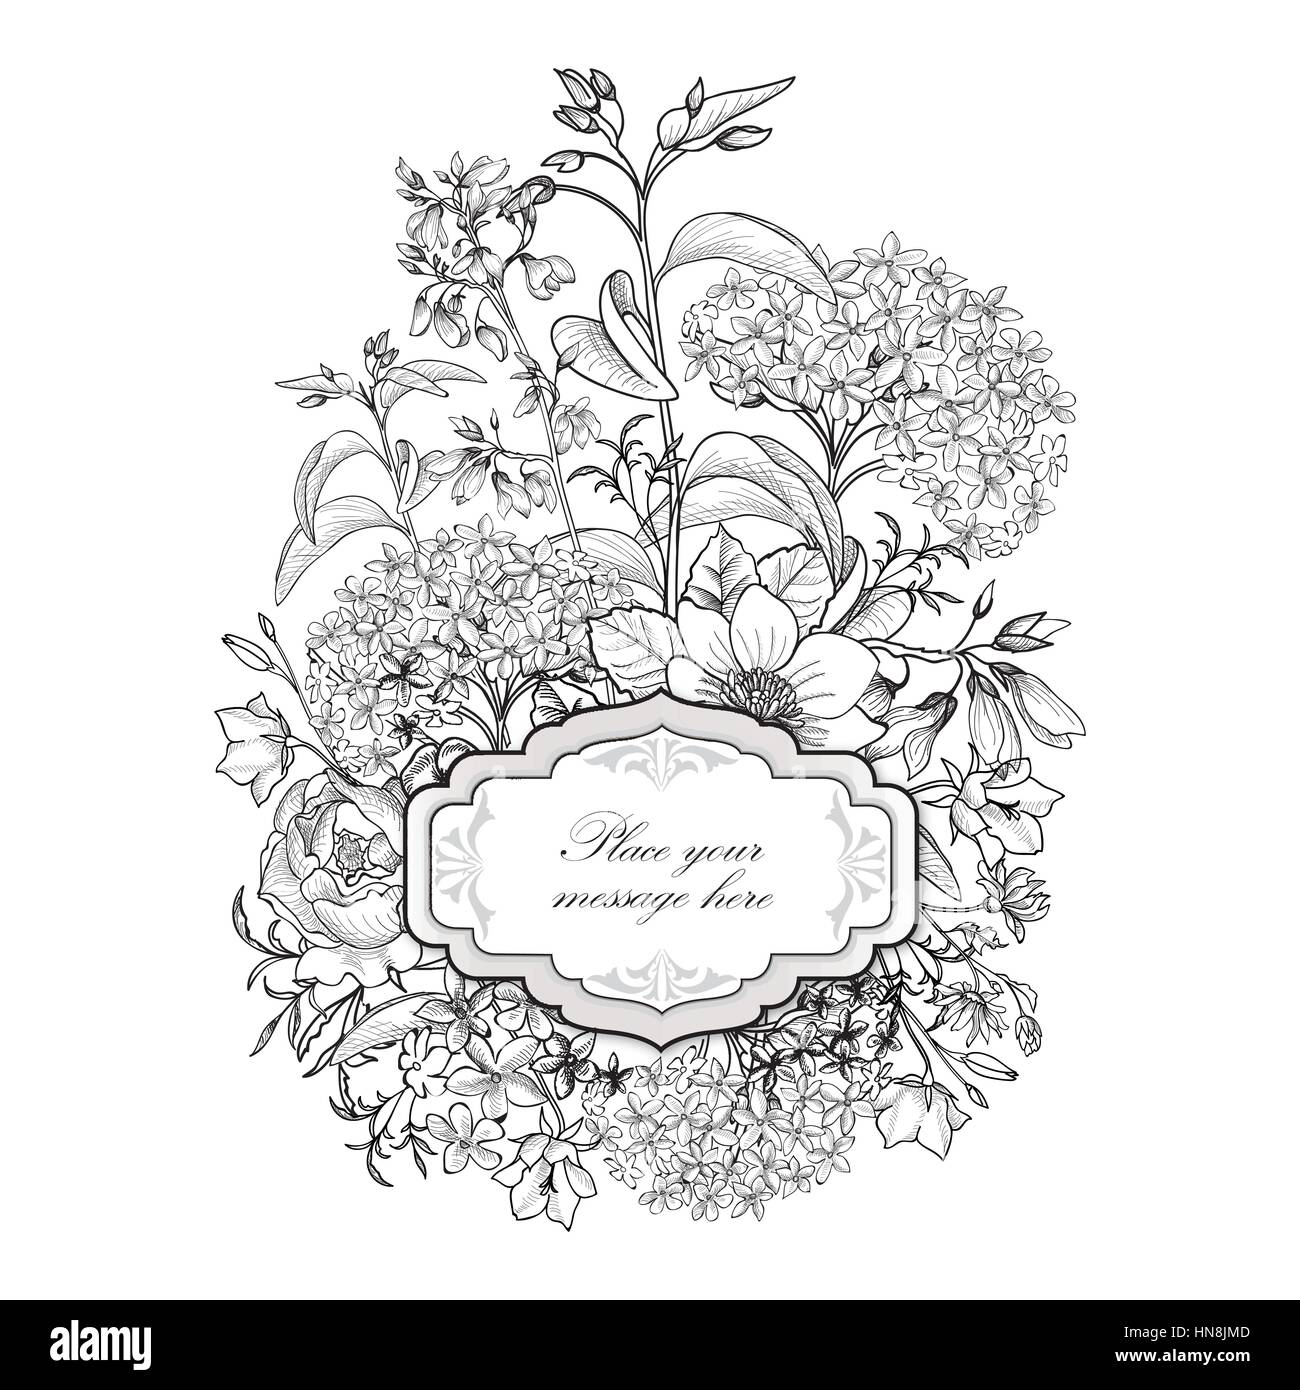 Vintage Floral Border Old Style Card Flourish Victorian Invitation